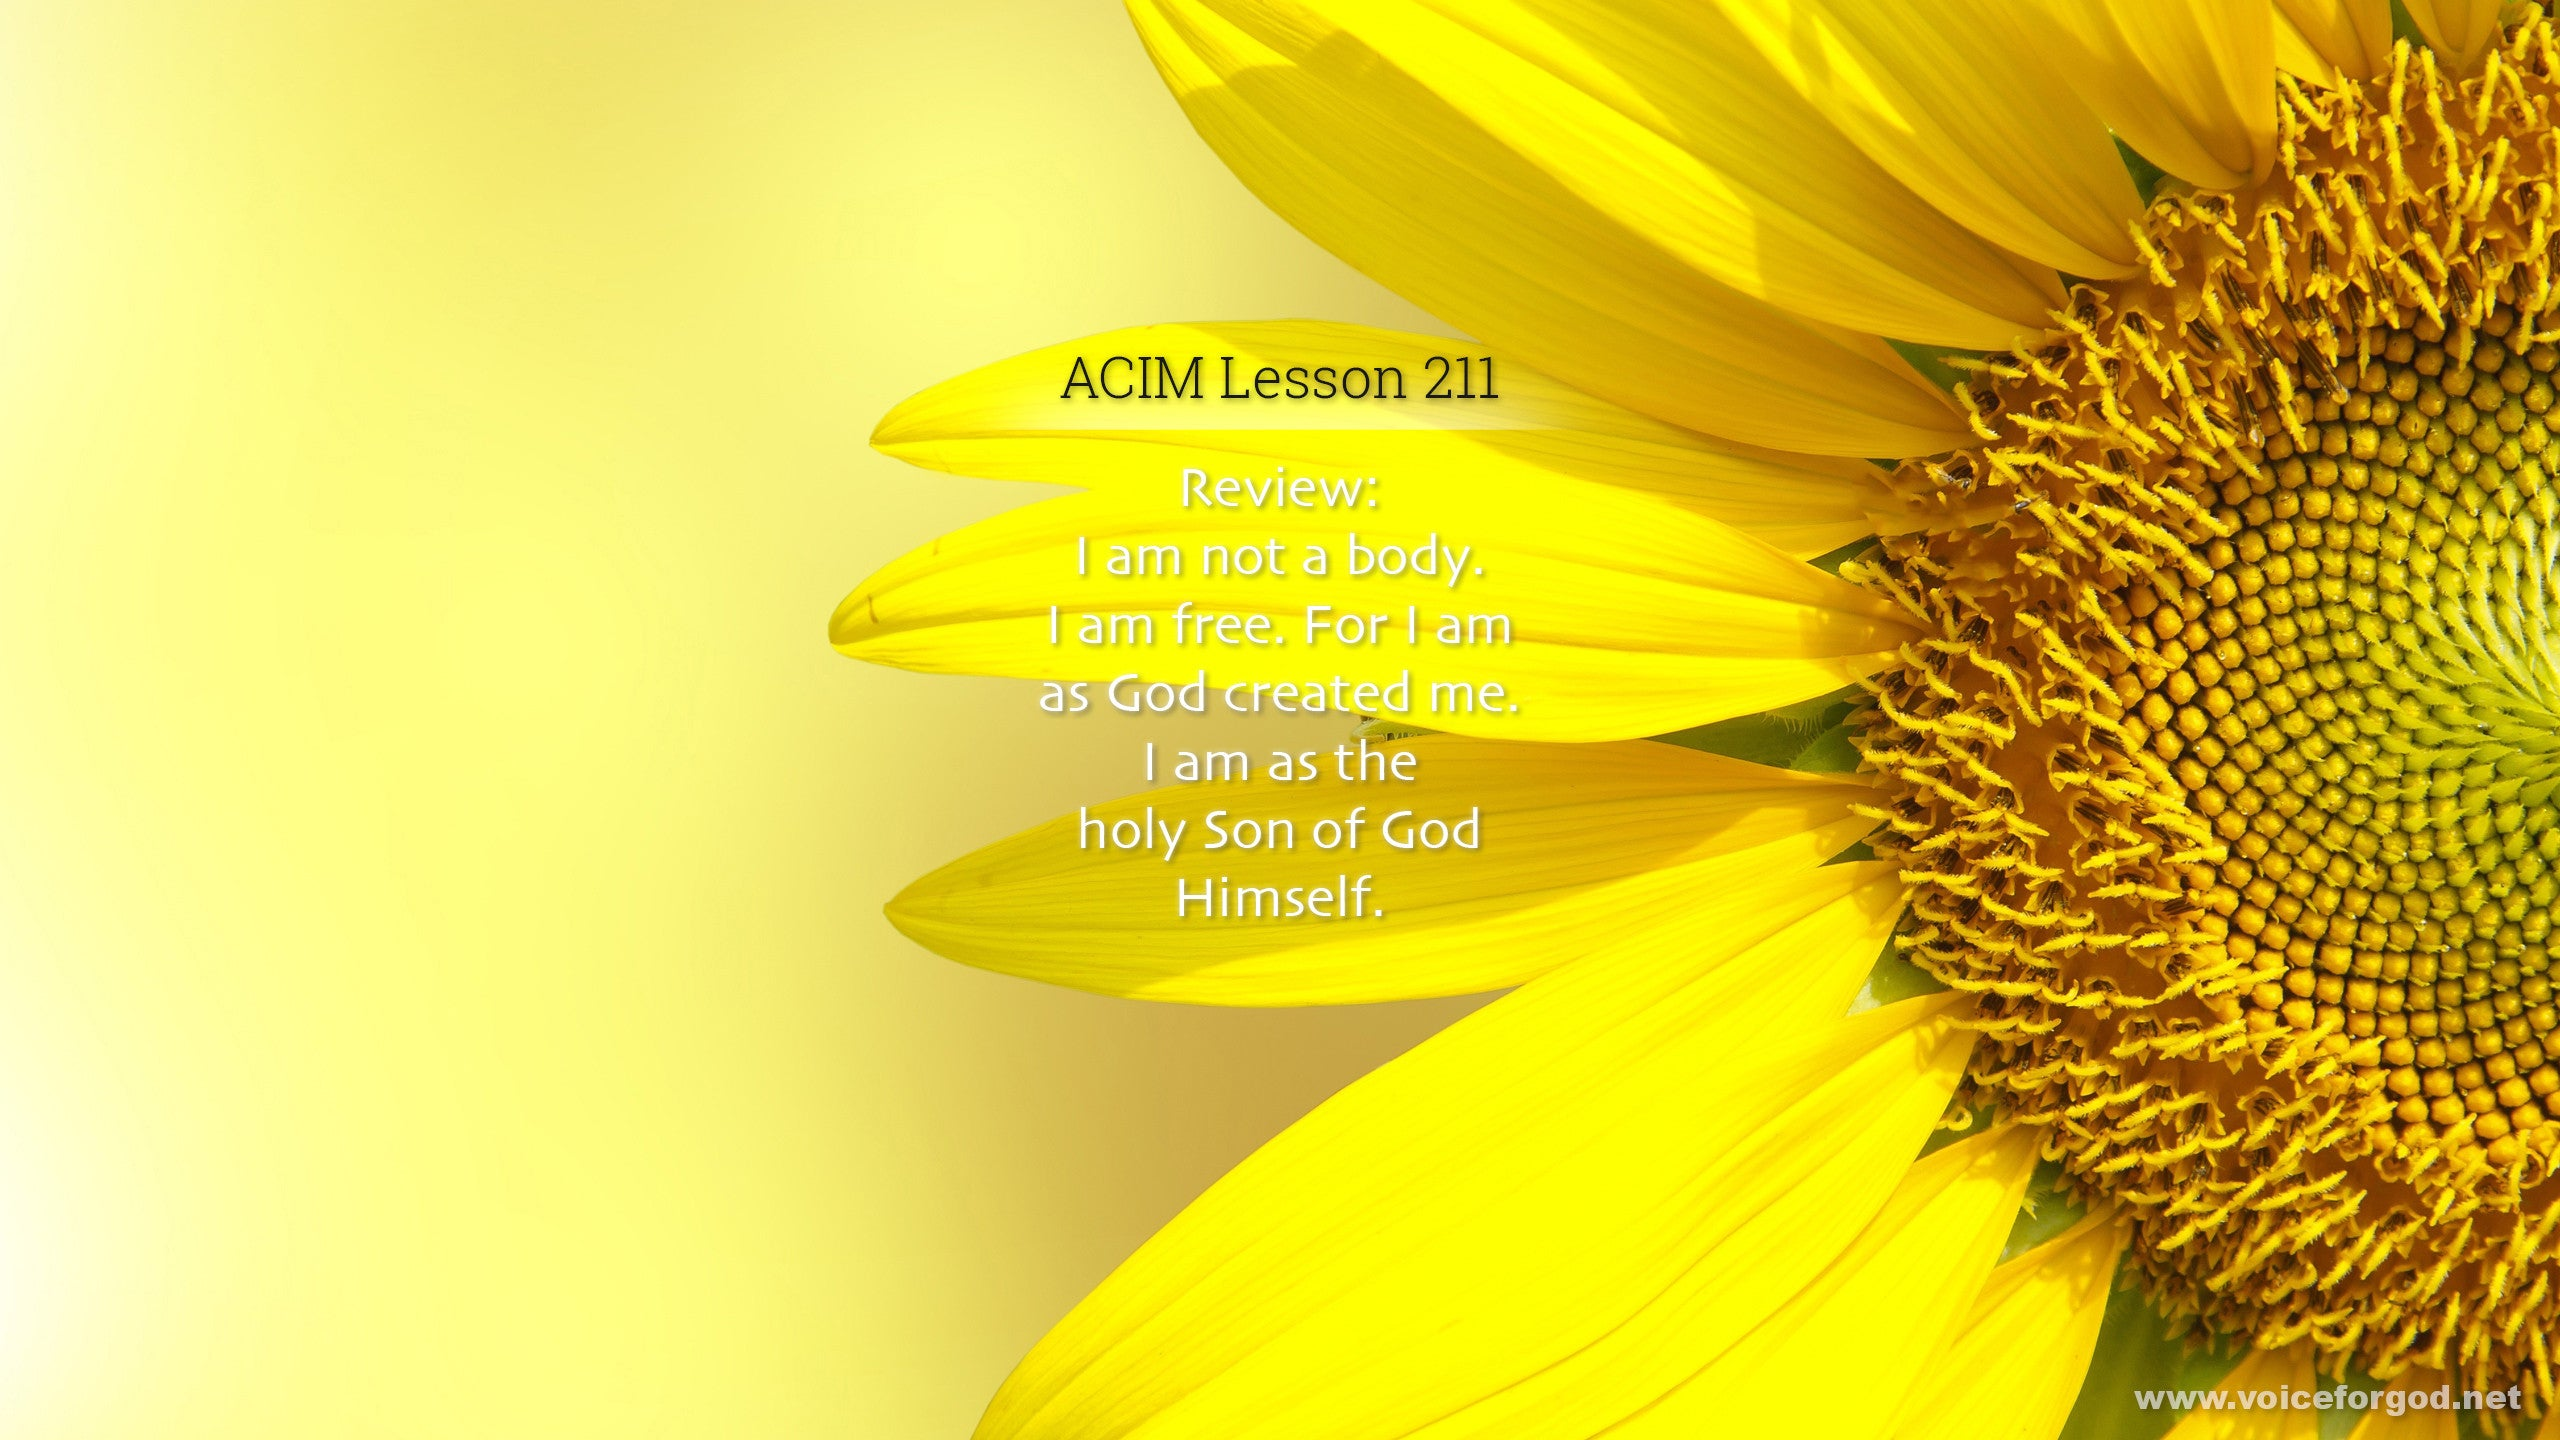 ACIM Lesson 211 - A Course in Miracles Workbook Lesson 211